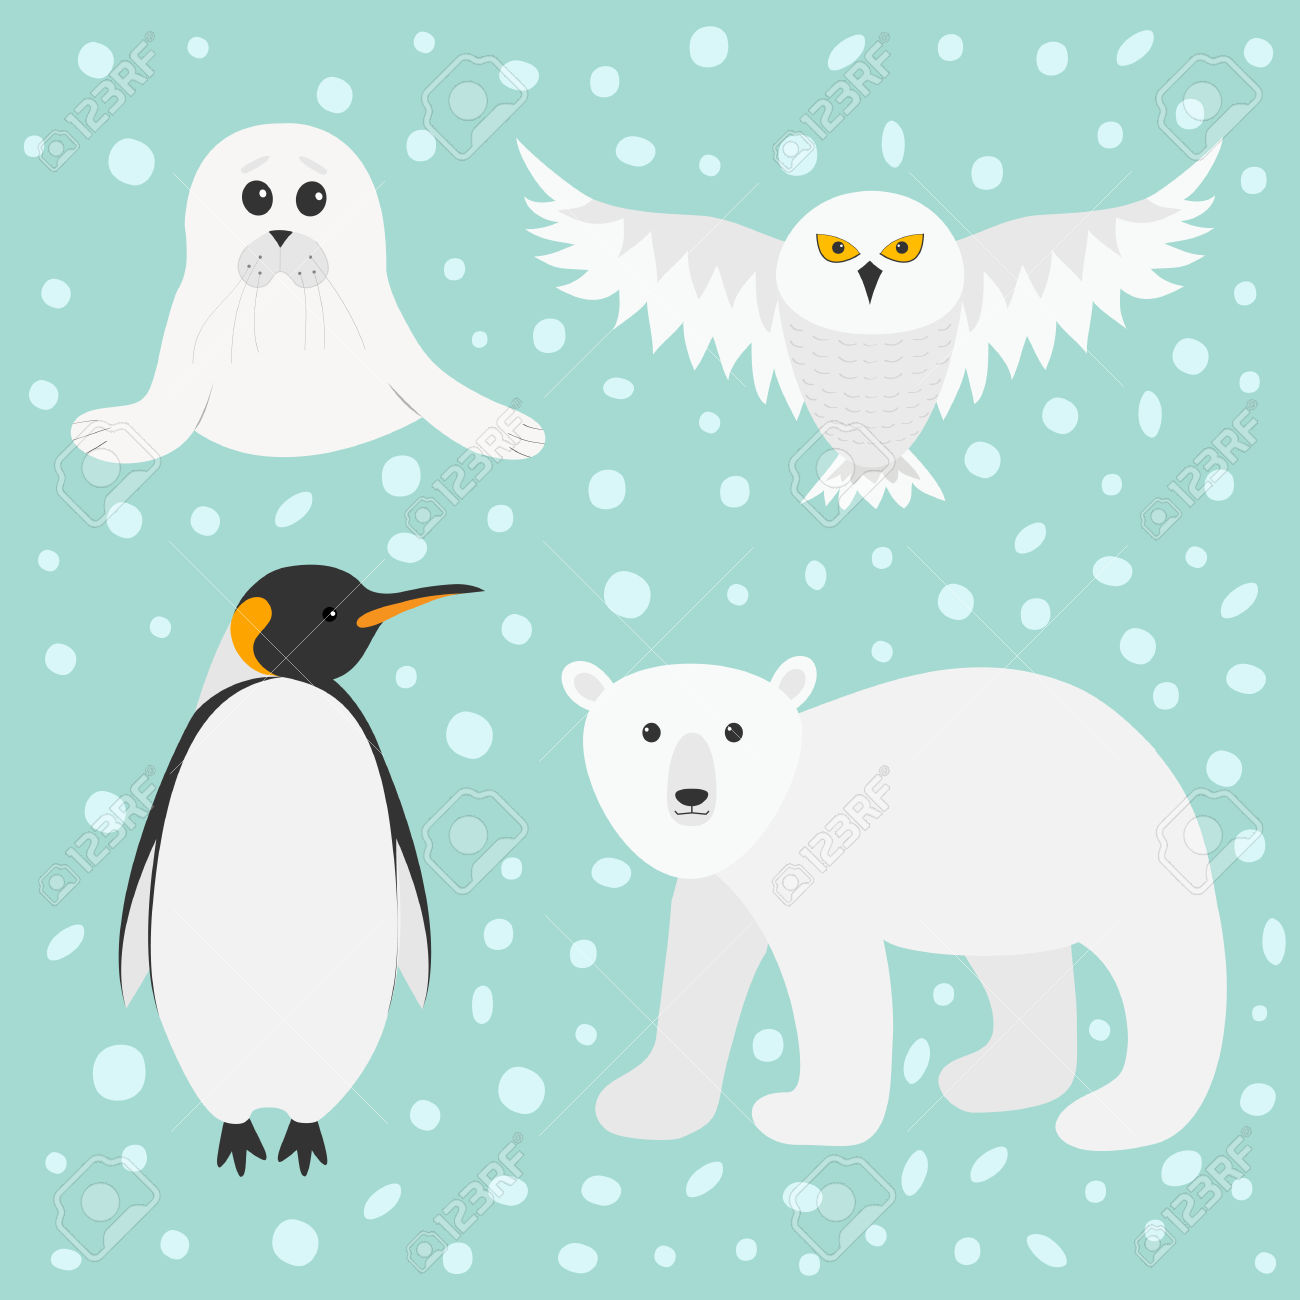 Arctic Polar Animal Set. White Bear, Owl, King Penguin Emperor.